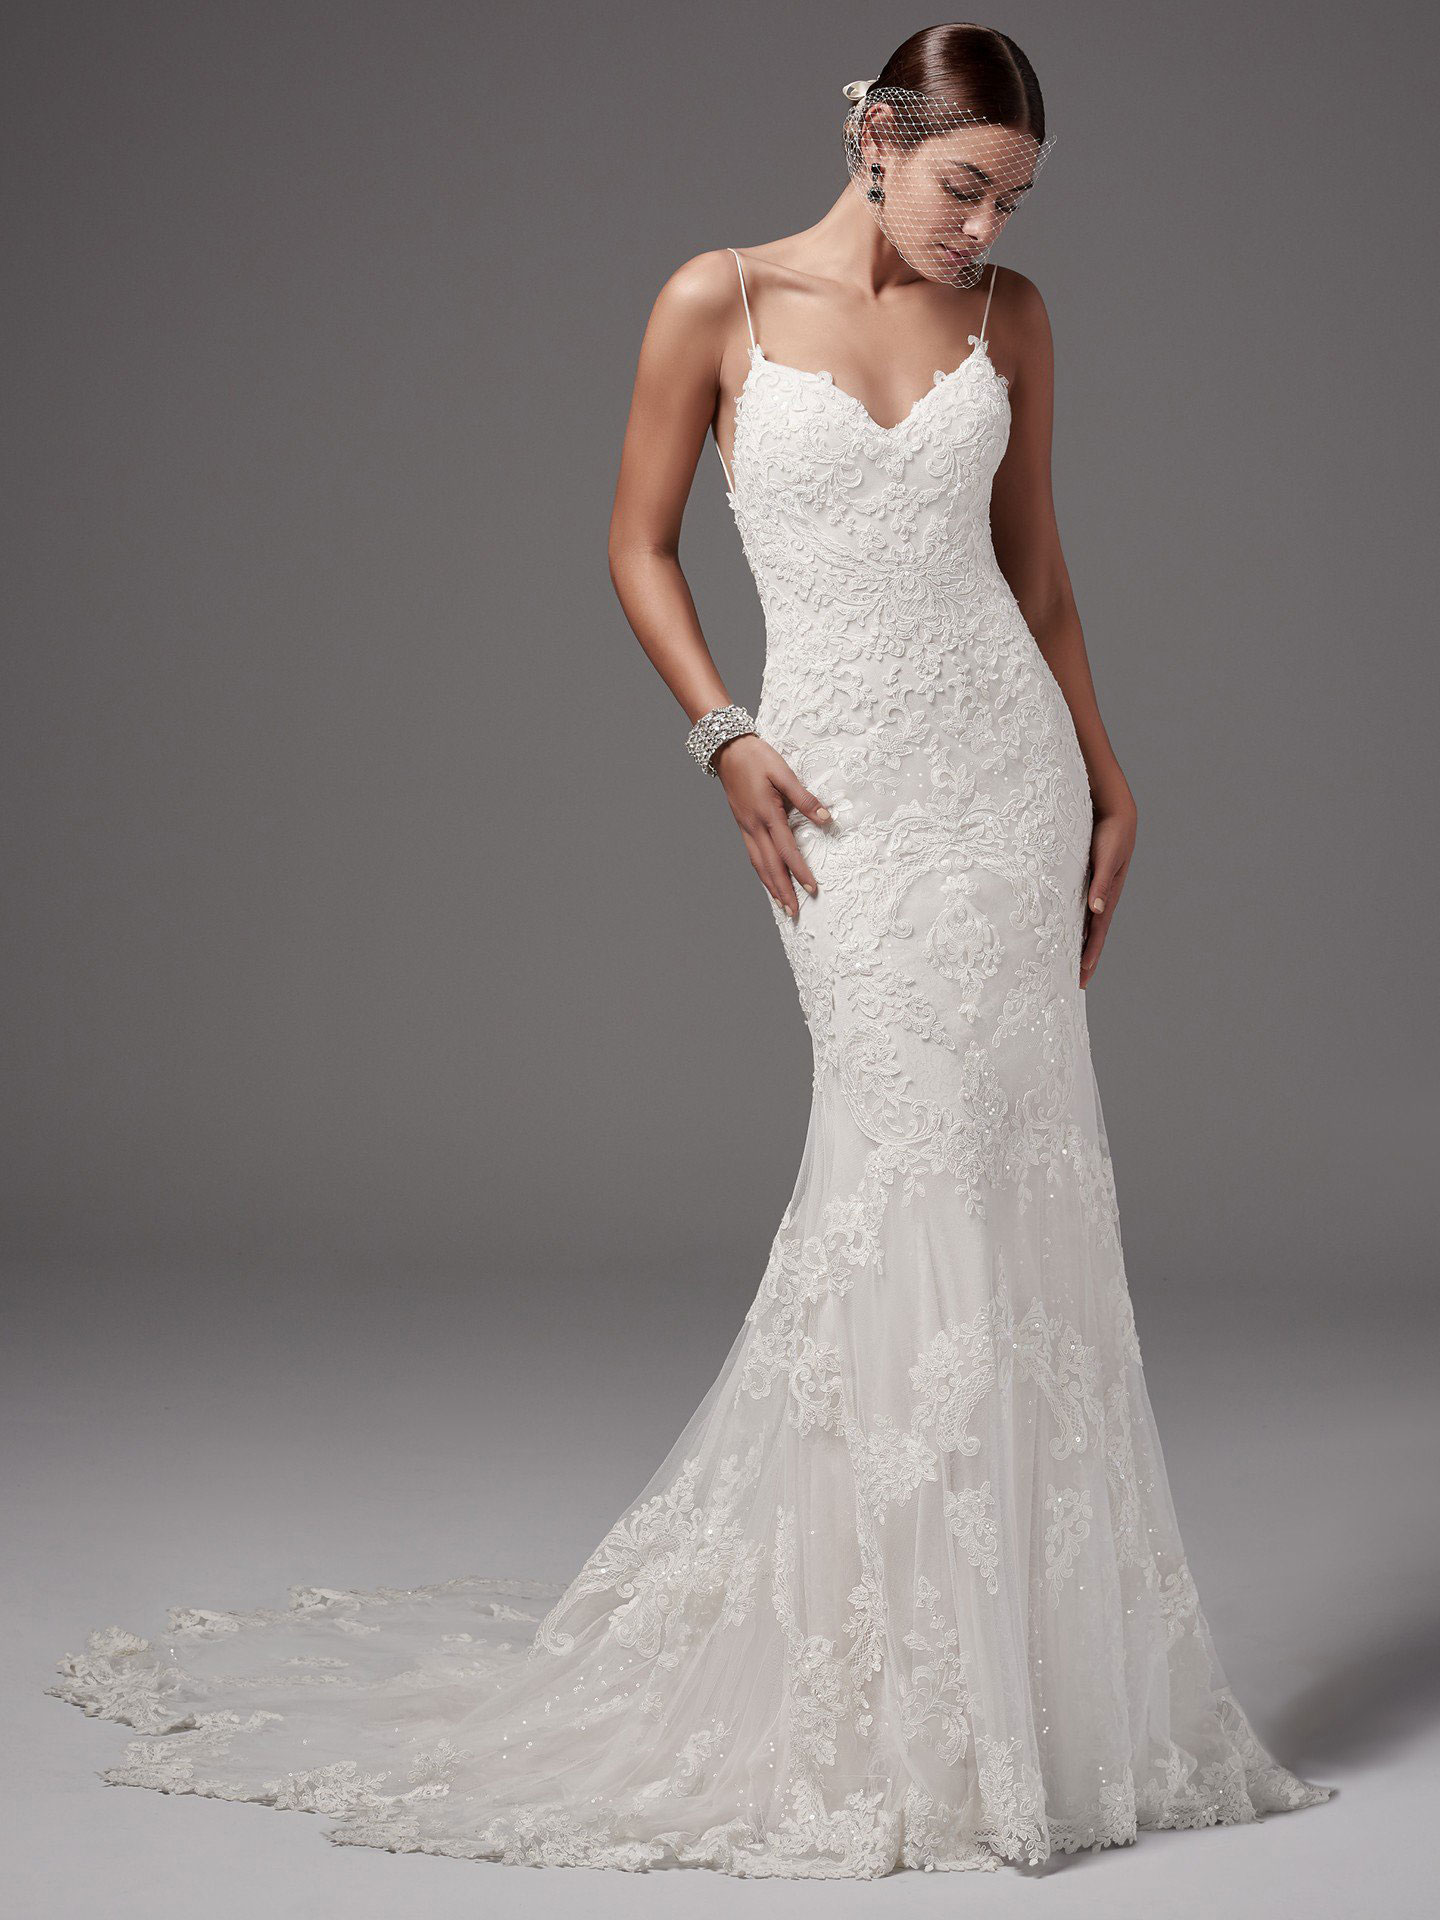 Sottero & Midgley <br> Bristol<br>Size 10 Was £1,500 Now £600